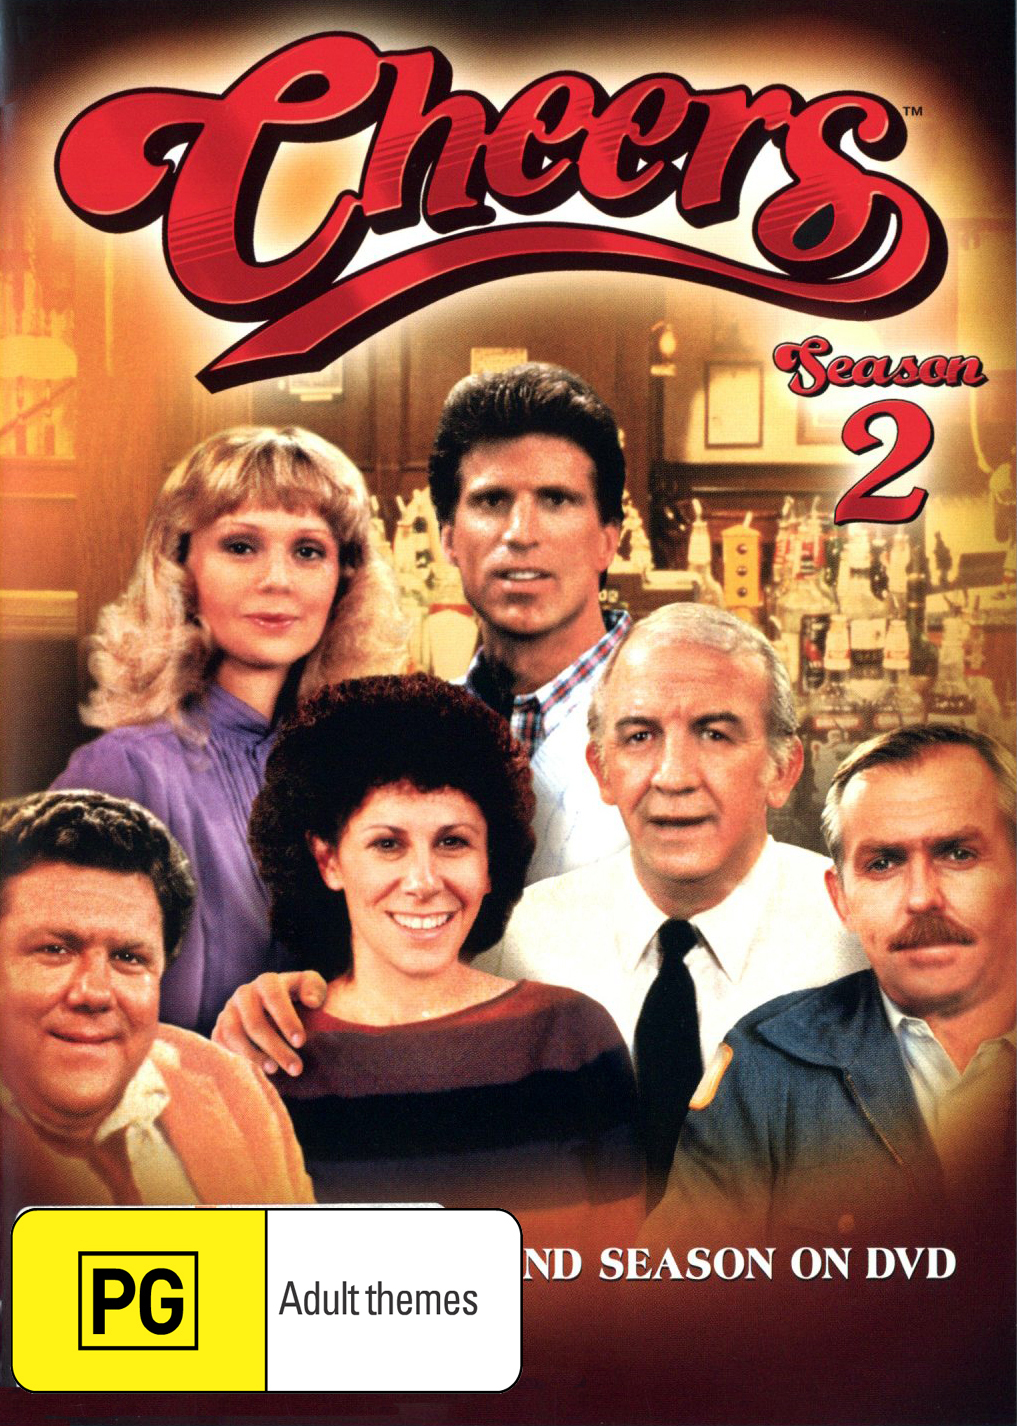 Cheers - Complete Season 2 on DVD image